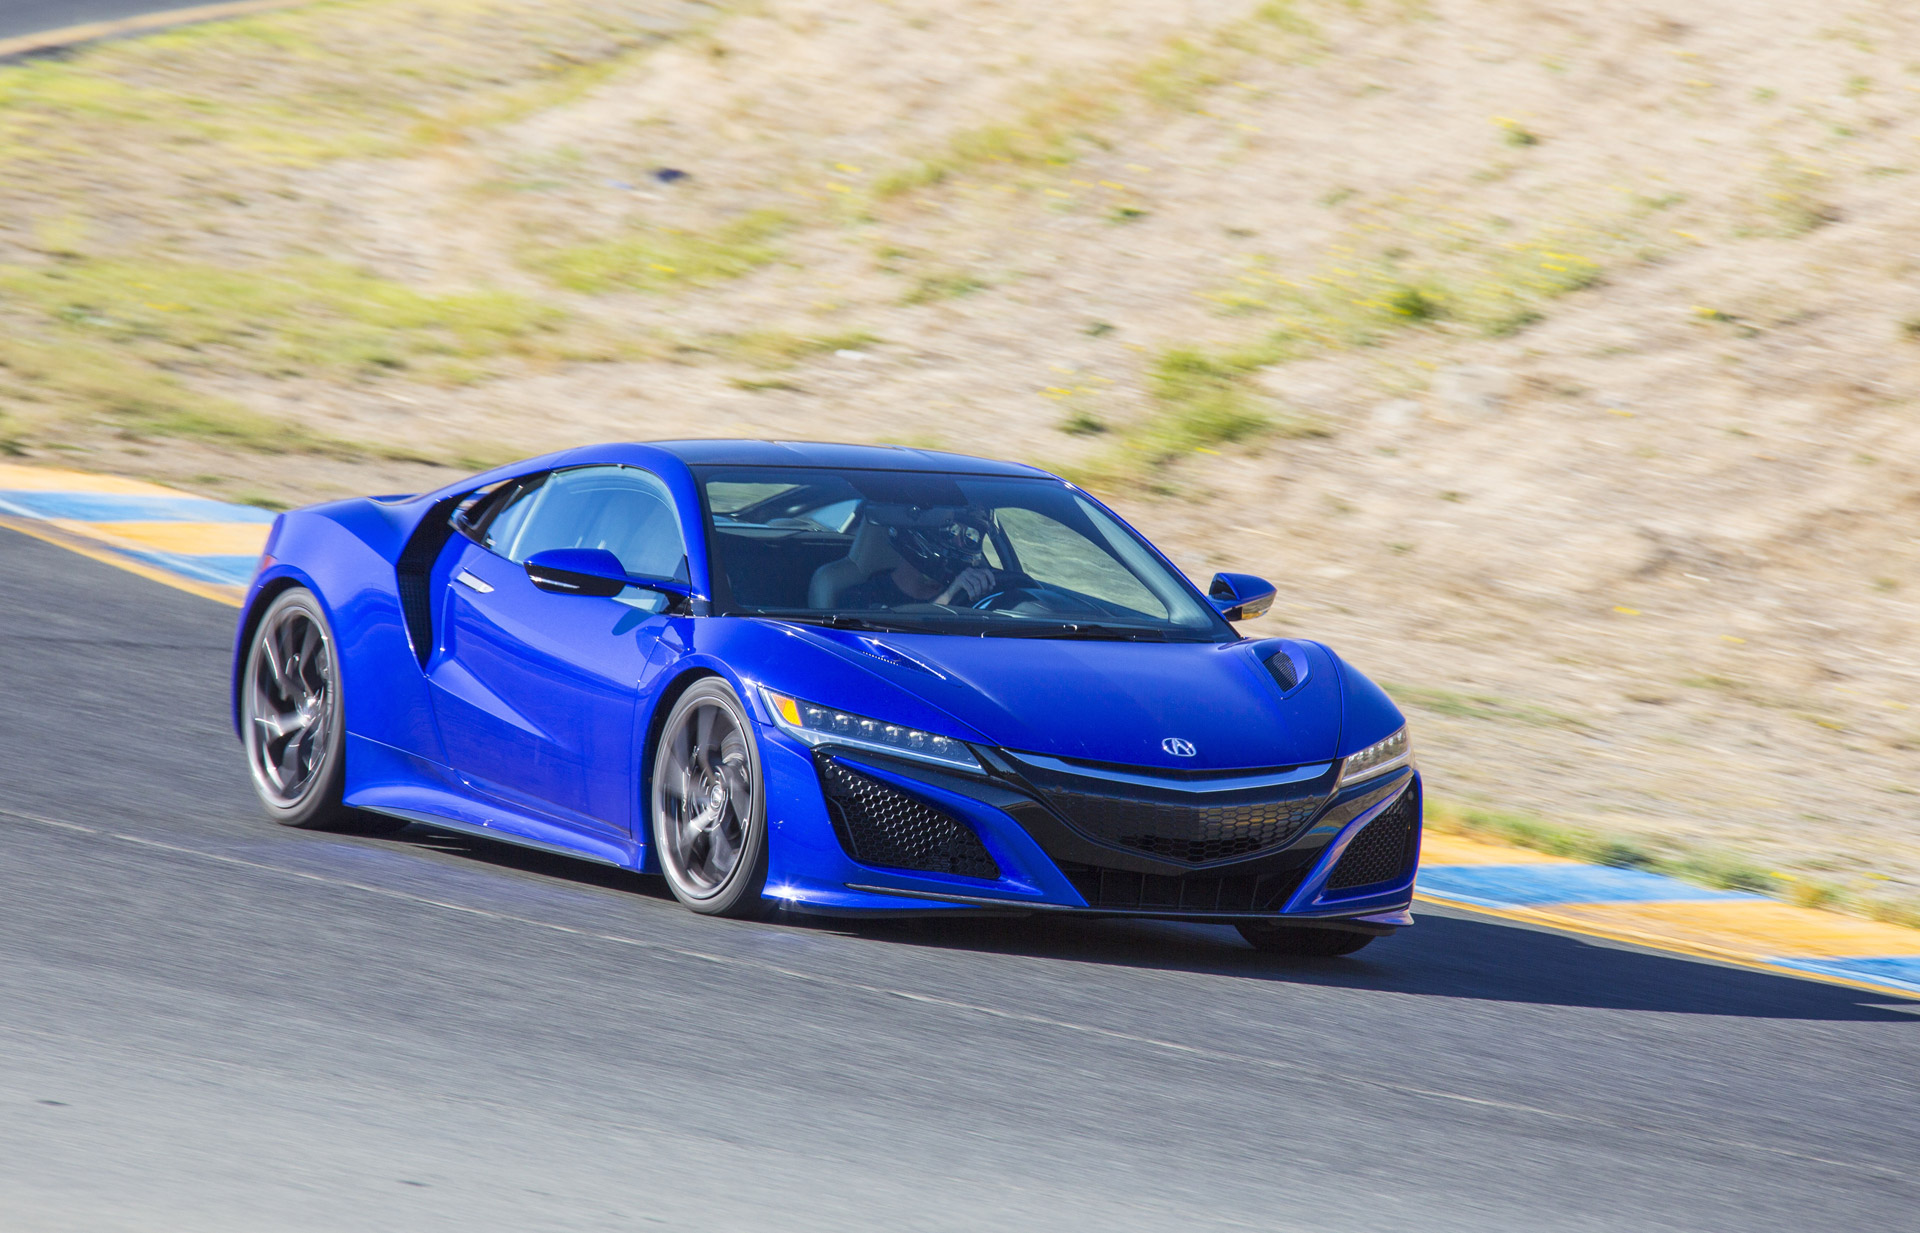 2017 Acura Nsx Coming With 573 Hp 0 60 Mph Time Of 3 0 Seconds